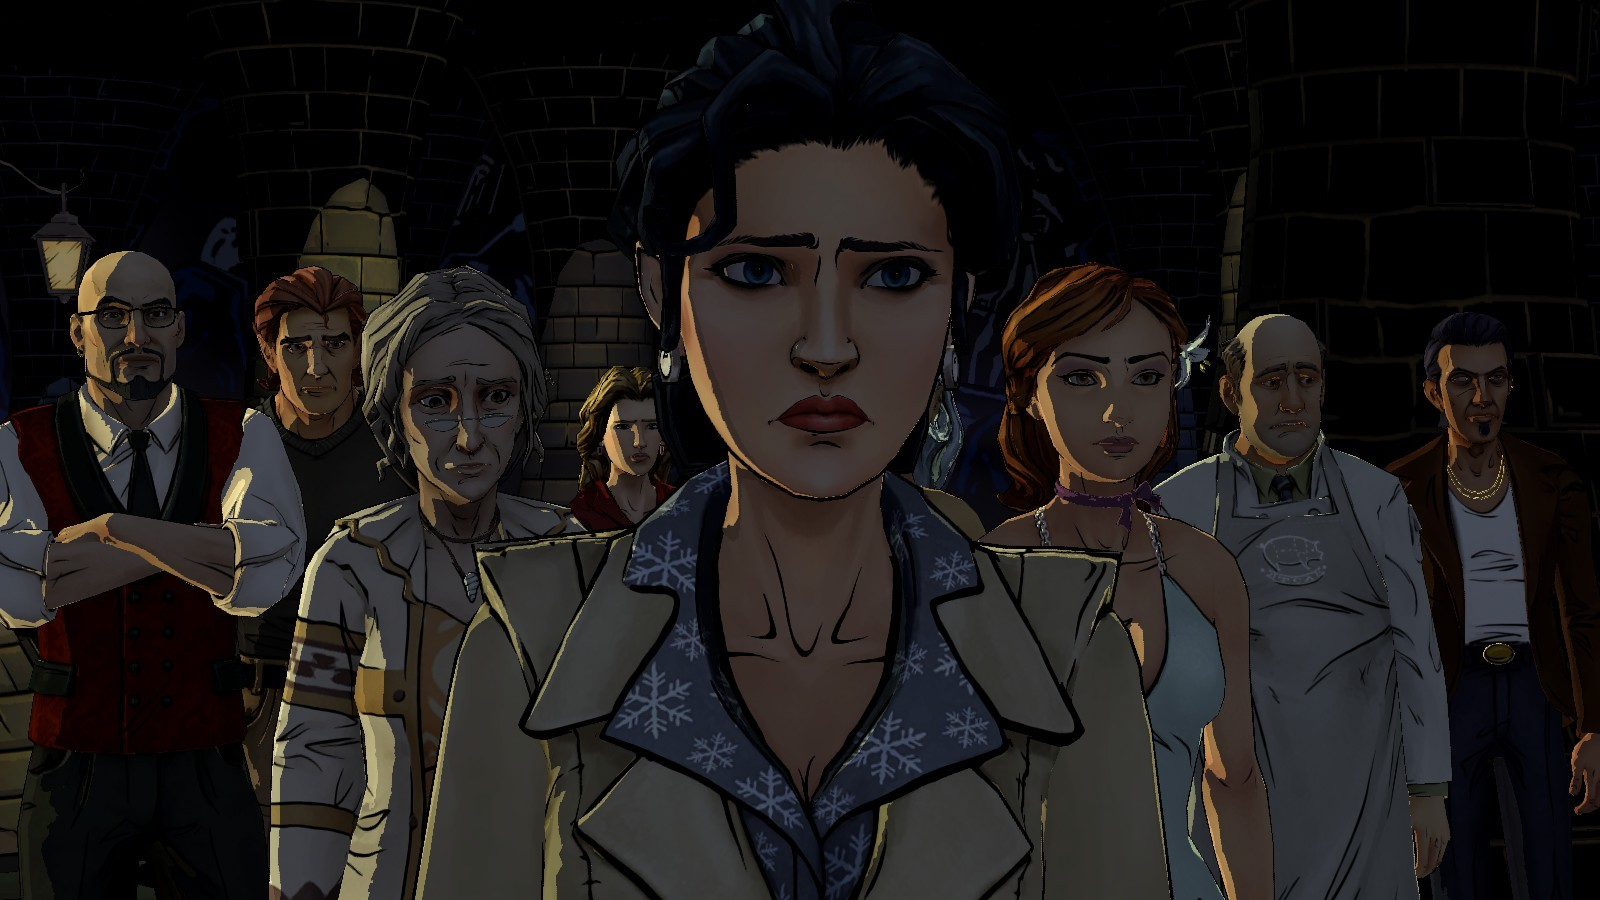 051: The Wolf Among Us (Season 1, Episode 5)